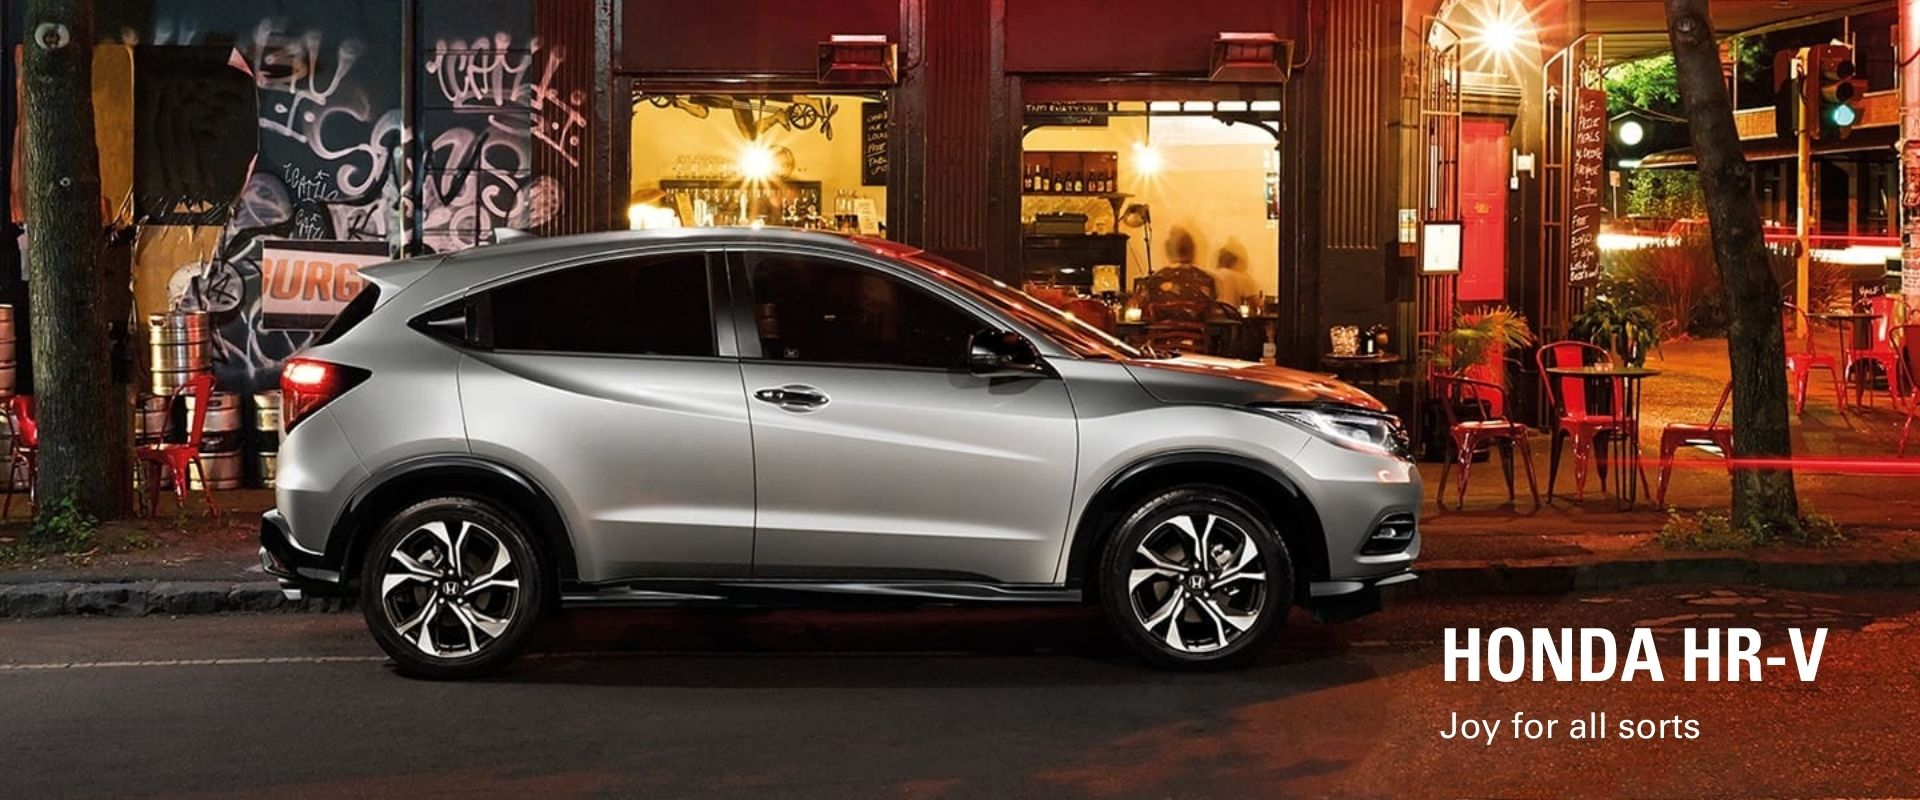 Honda HR-V. Joy for all sorts.